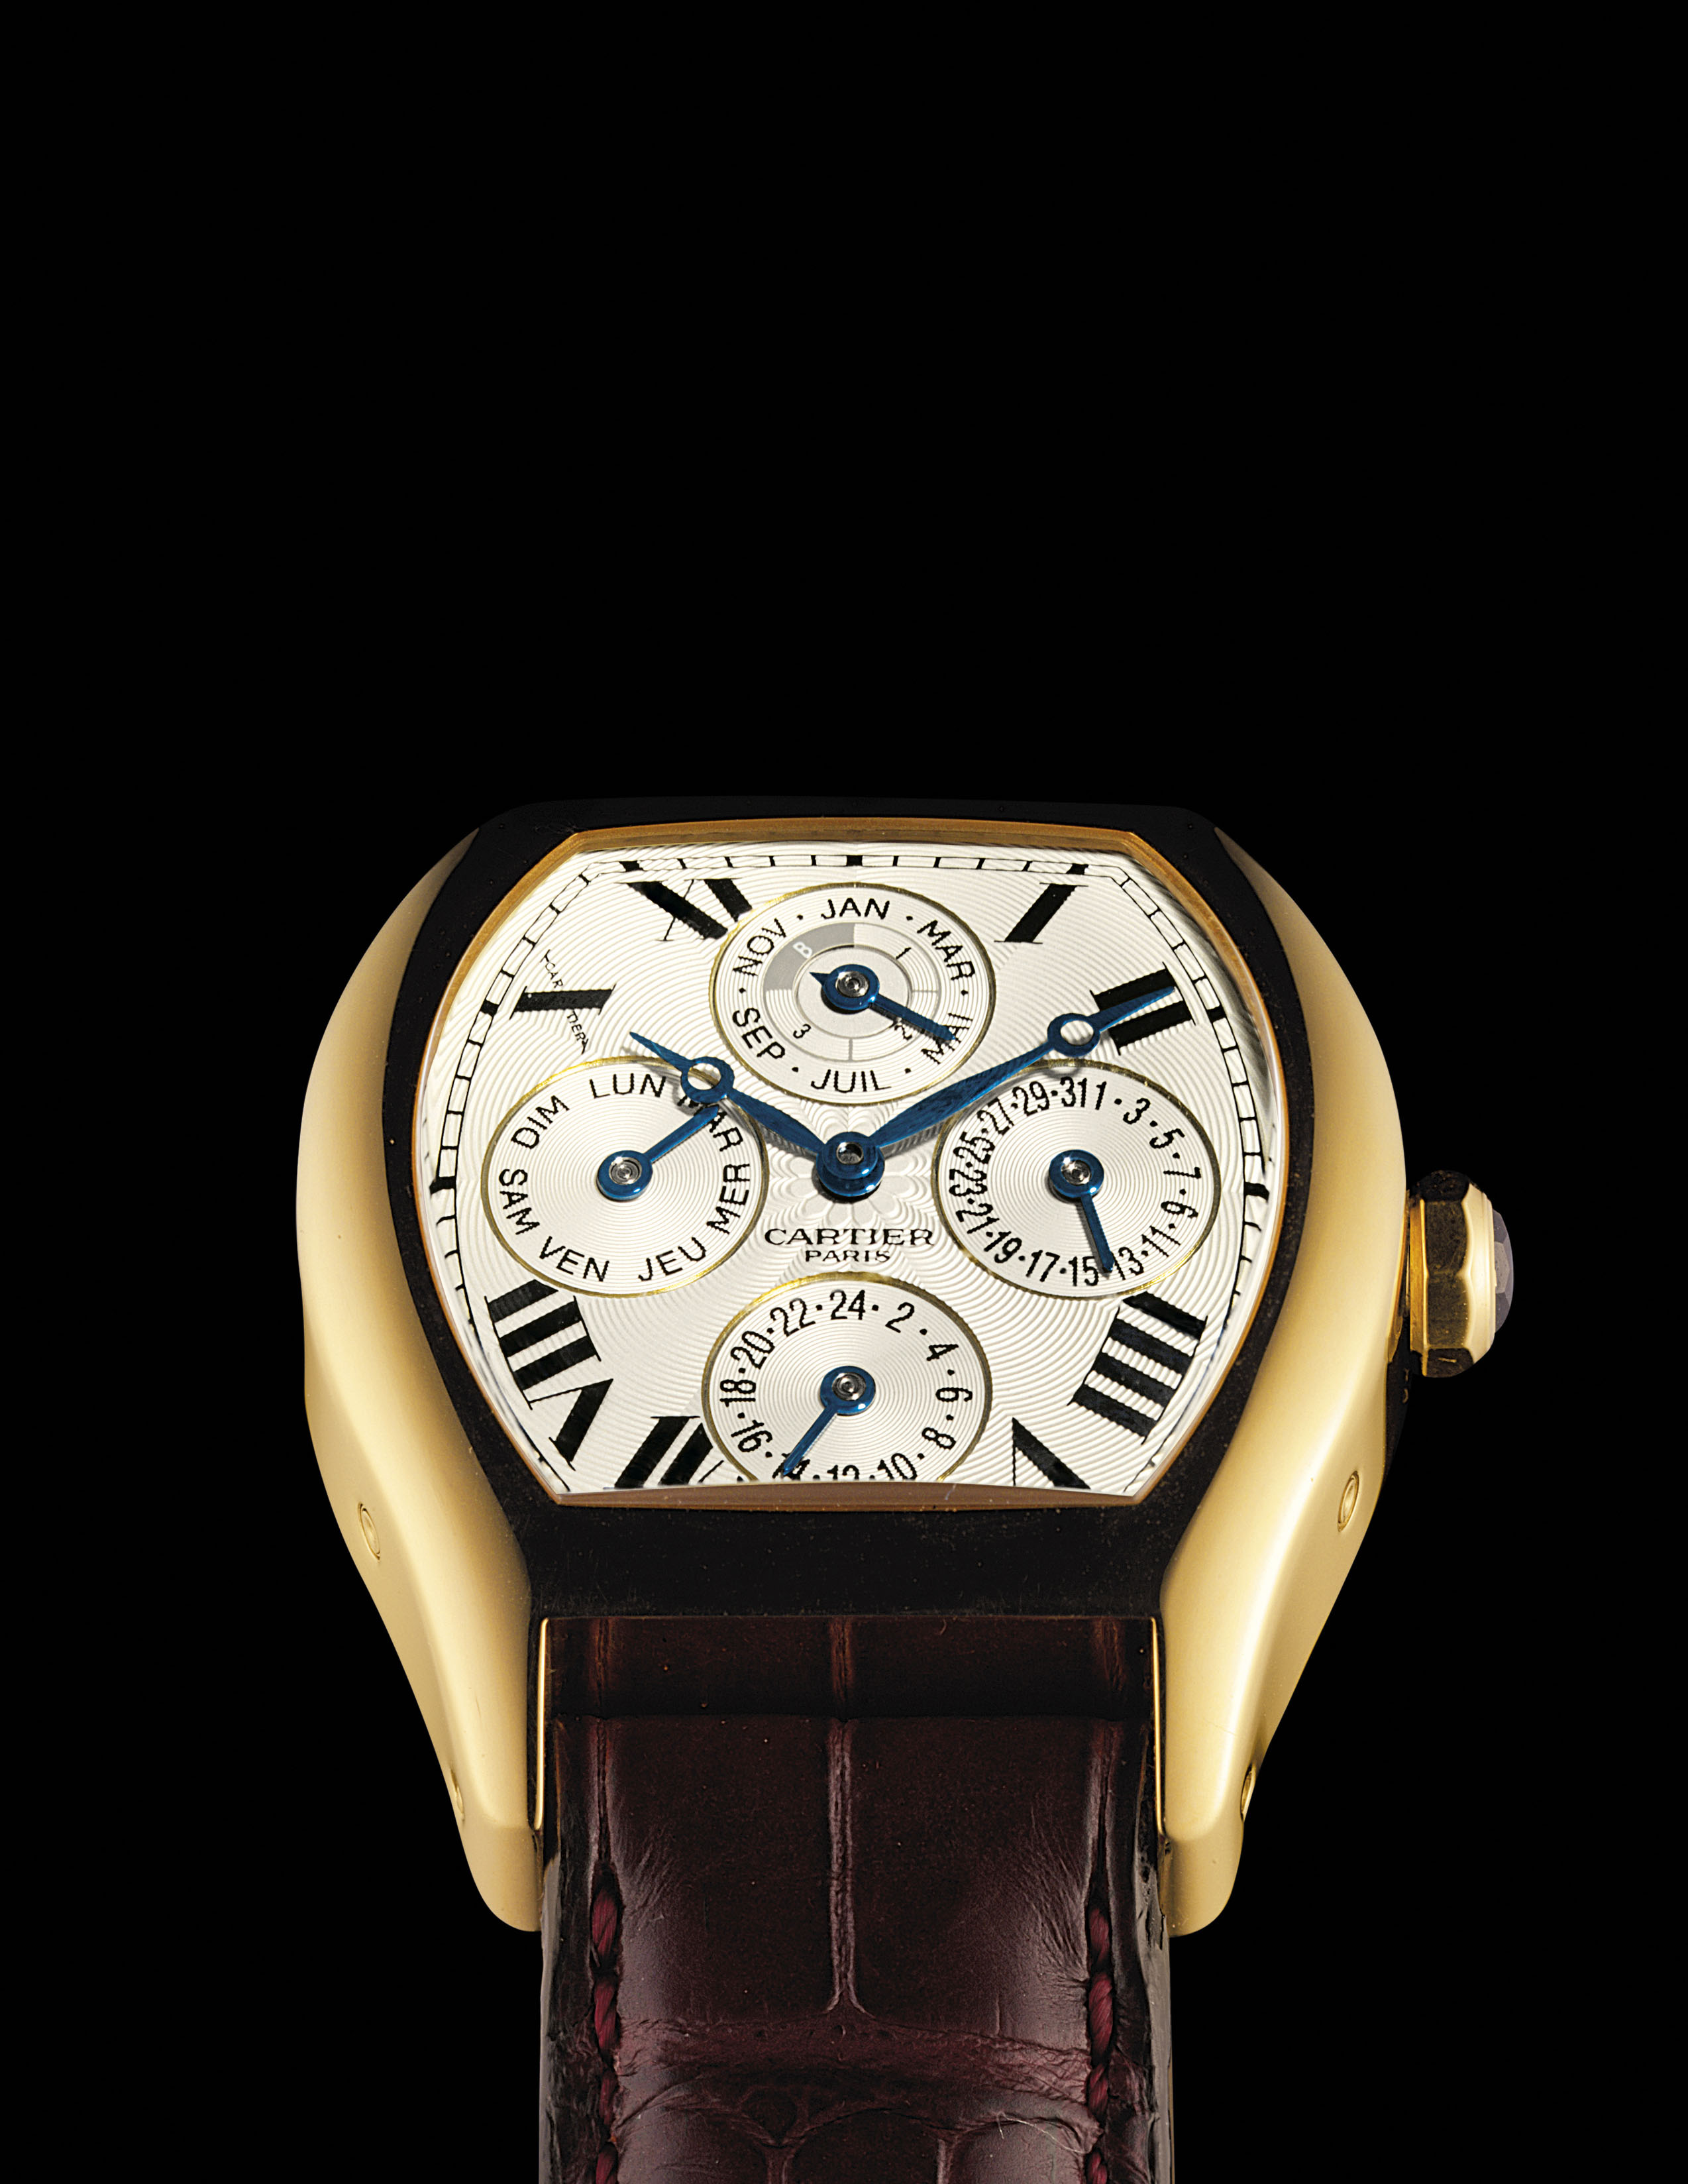 CARTIER. A FINE AND LARGE 18K GOLD TONNEAU-SHAPED AUTOMATIC PERPETUAL CALENDAR DUAL TIME WRISTWATCH